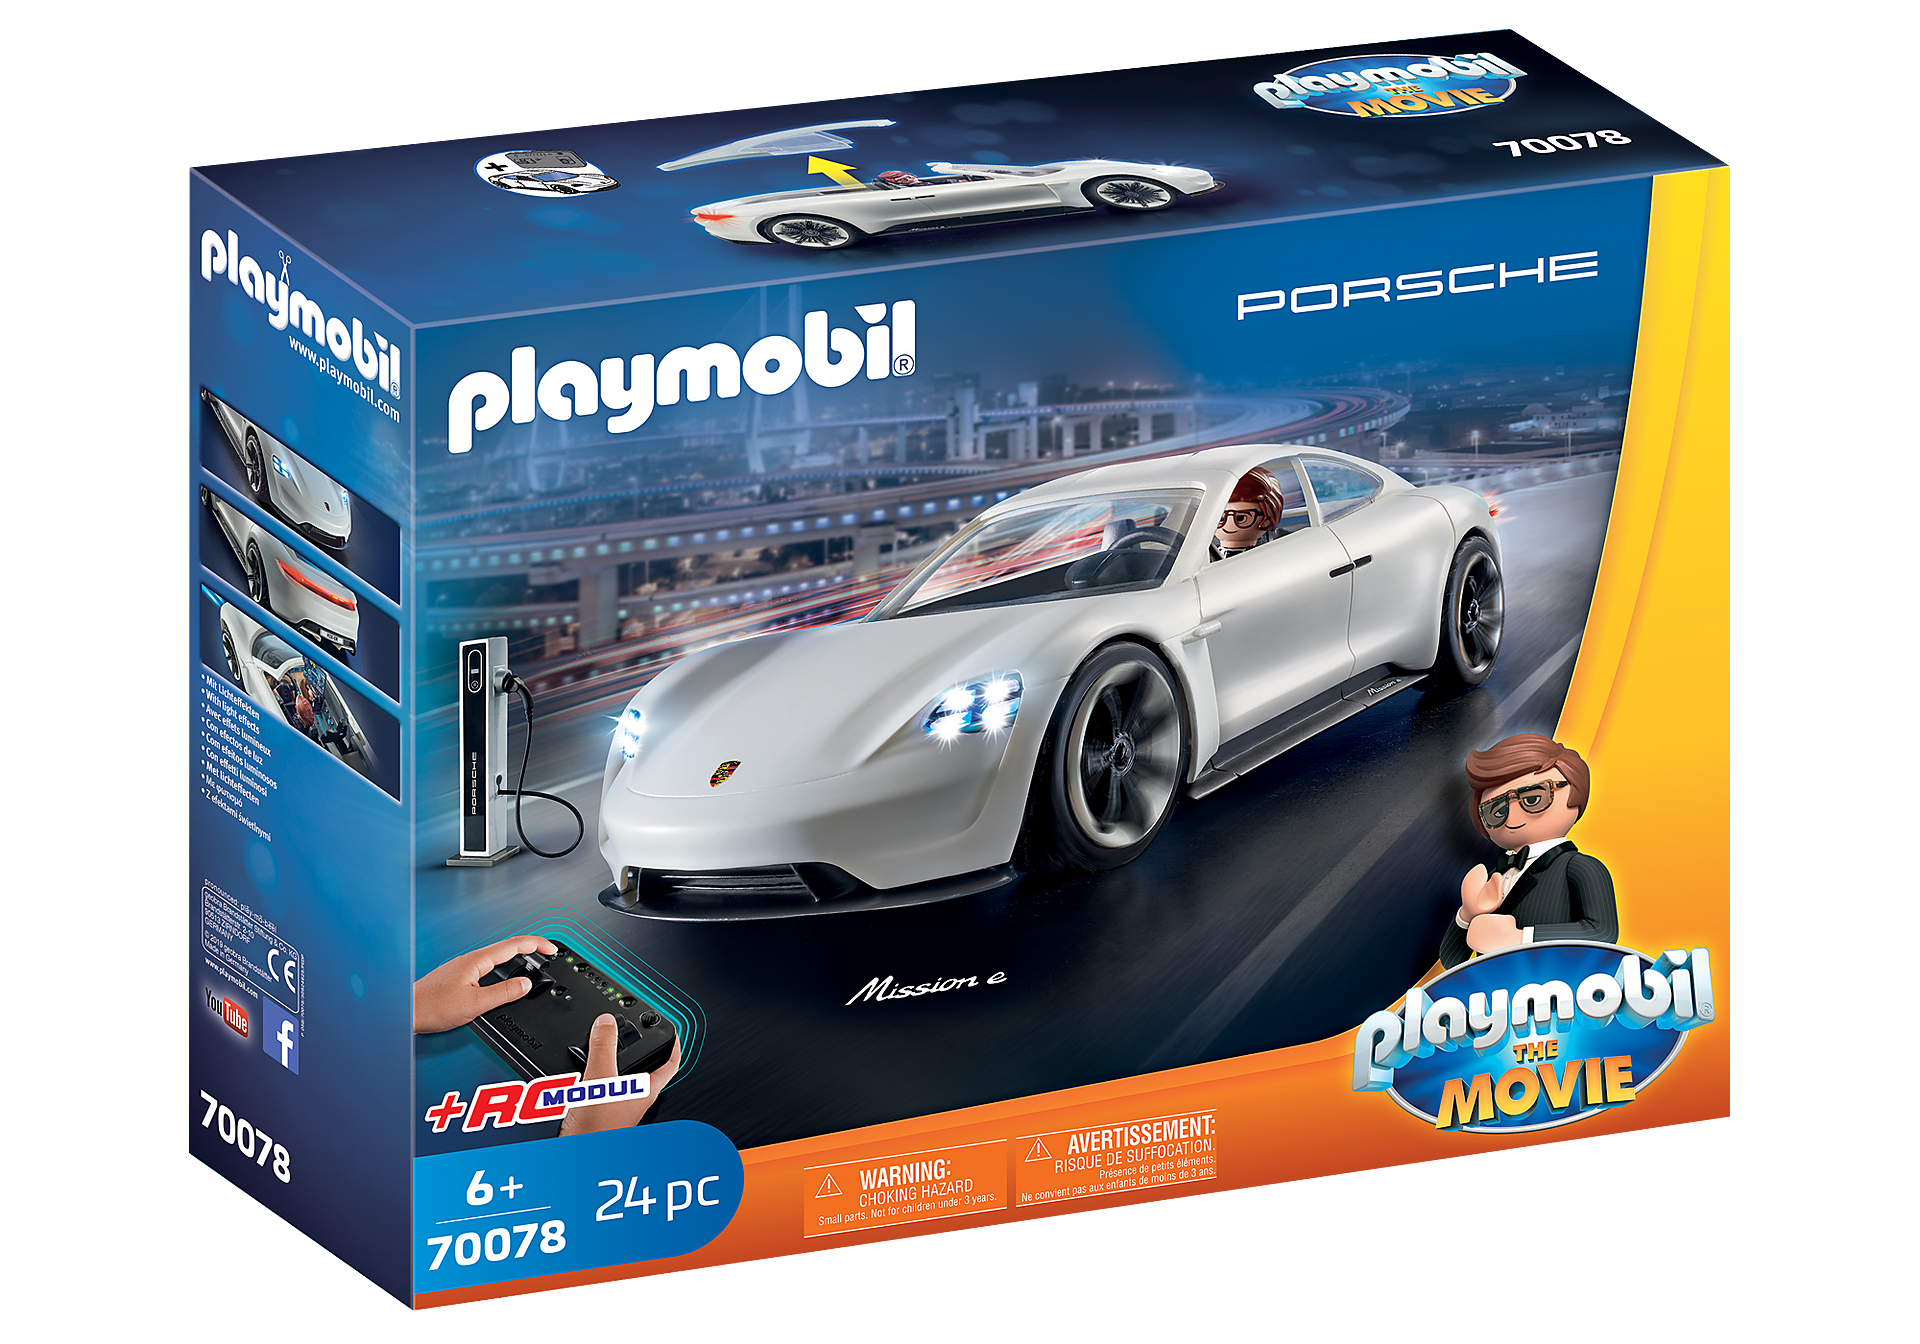 http://media.playmobil.com/i/playmobil/70078_product_box_front/PLAYMOBIL:THE MOVIE Rex Dasher's Porsche Mission E